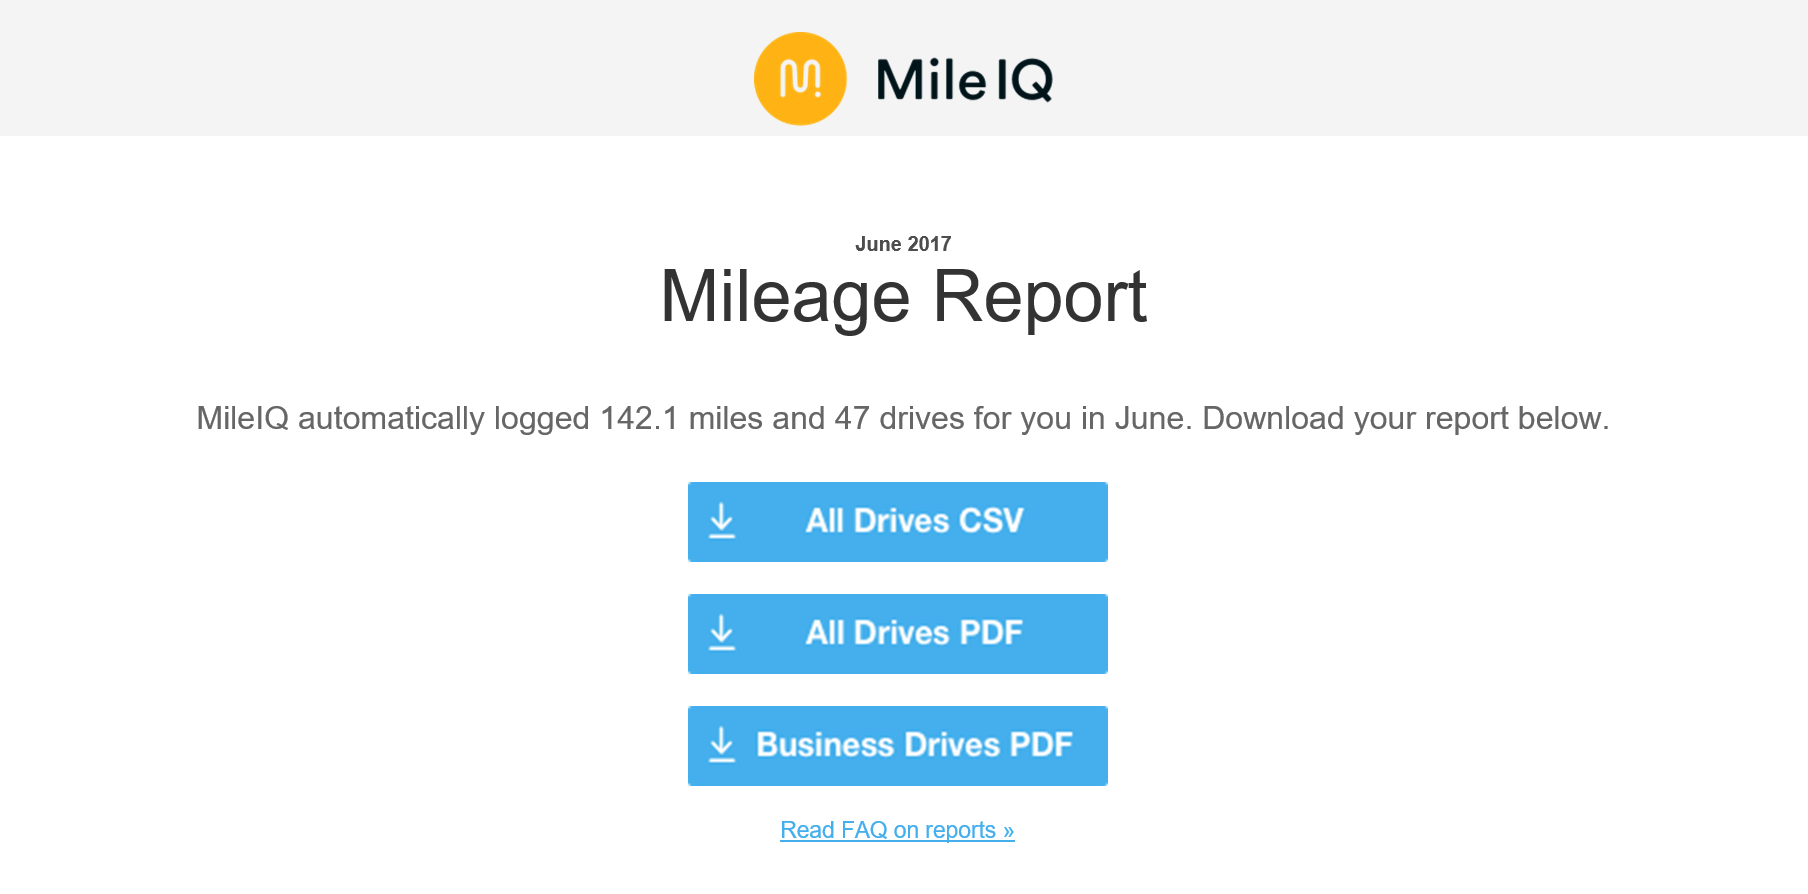 image of email with buttons to download CSV and PDF reports for June